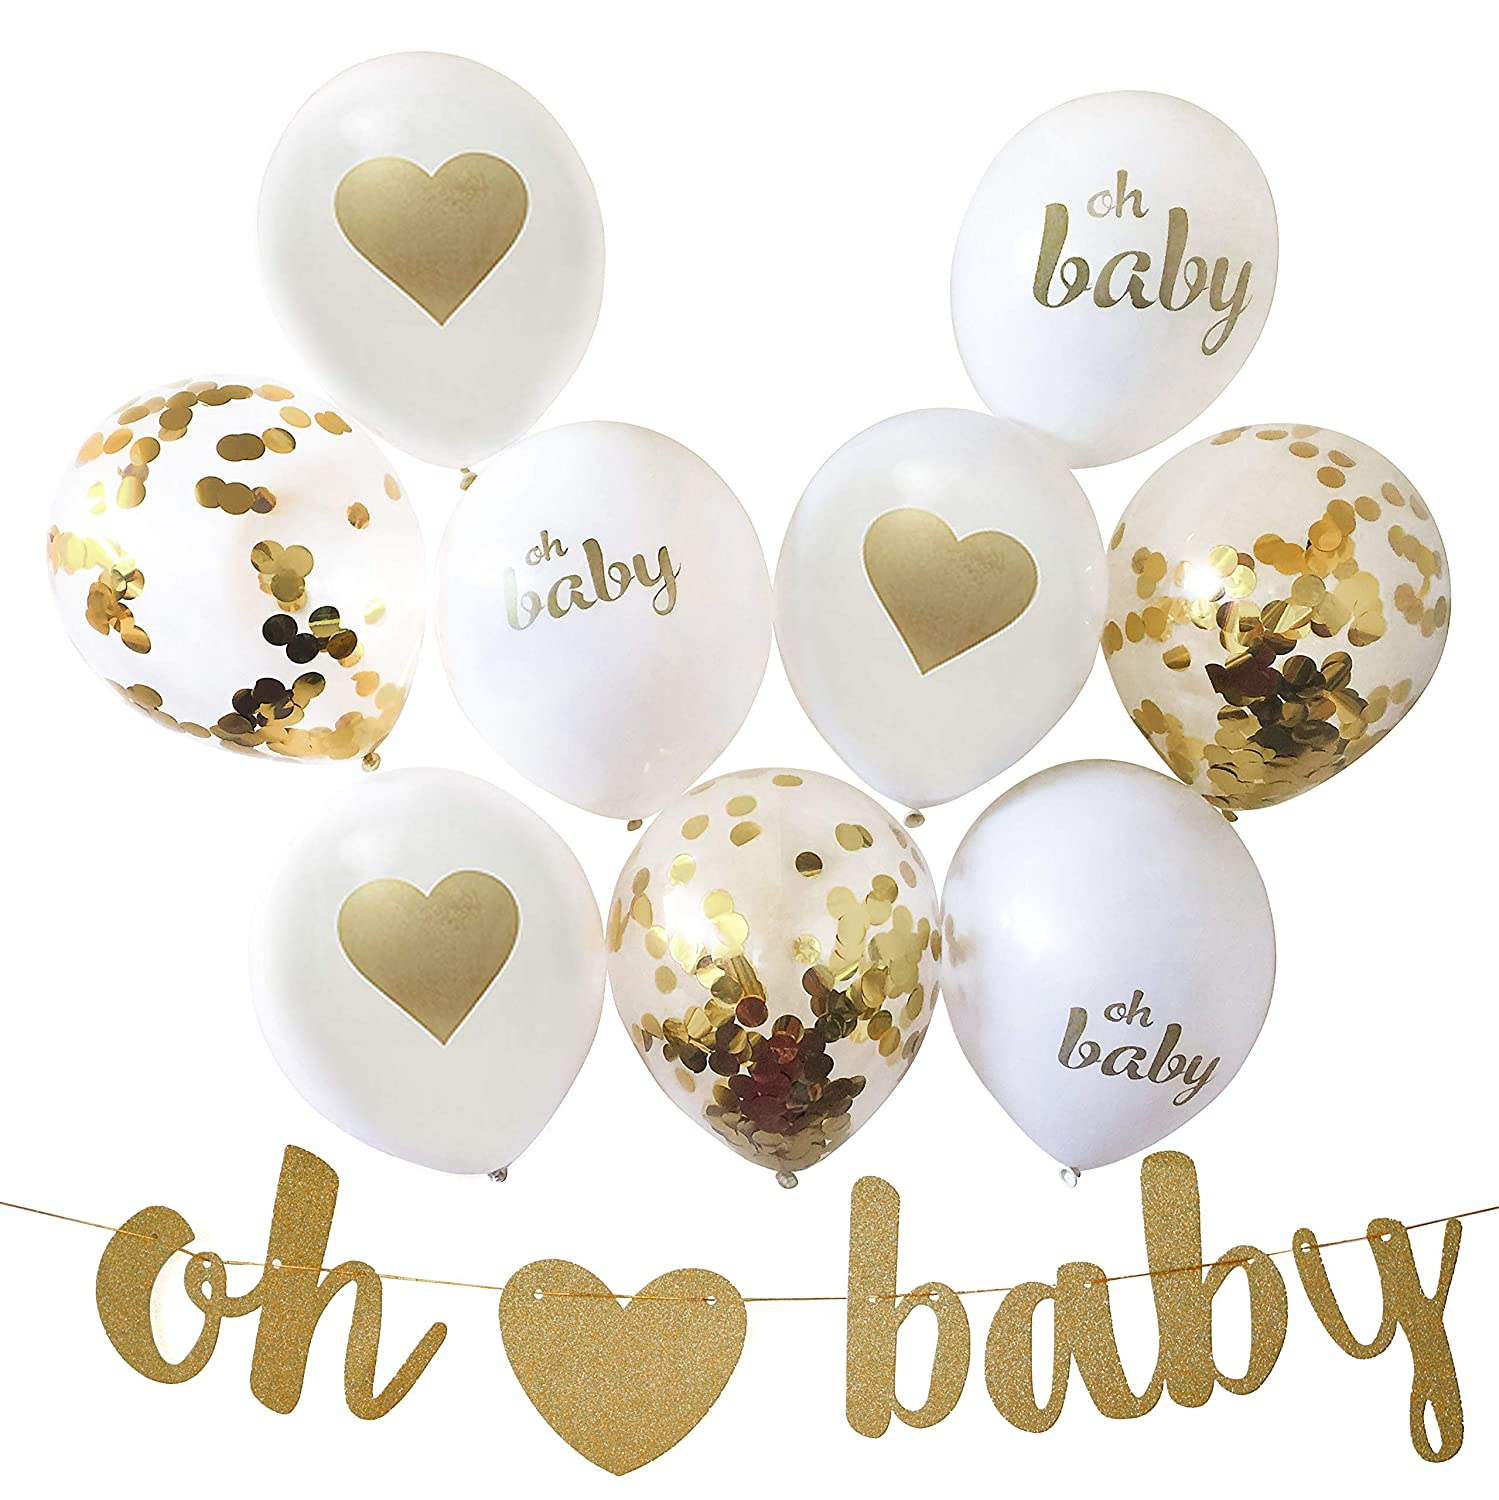 Gender Reveal Party Decorations For Gender Neutral Baby Shower 13 Piece Set Includes Oh Baby Banner